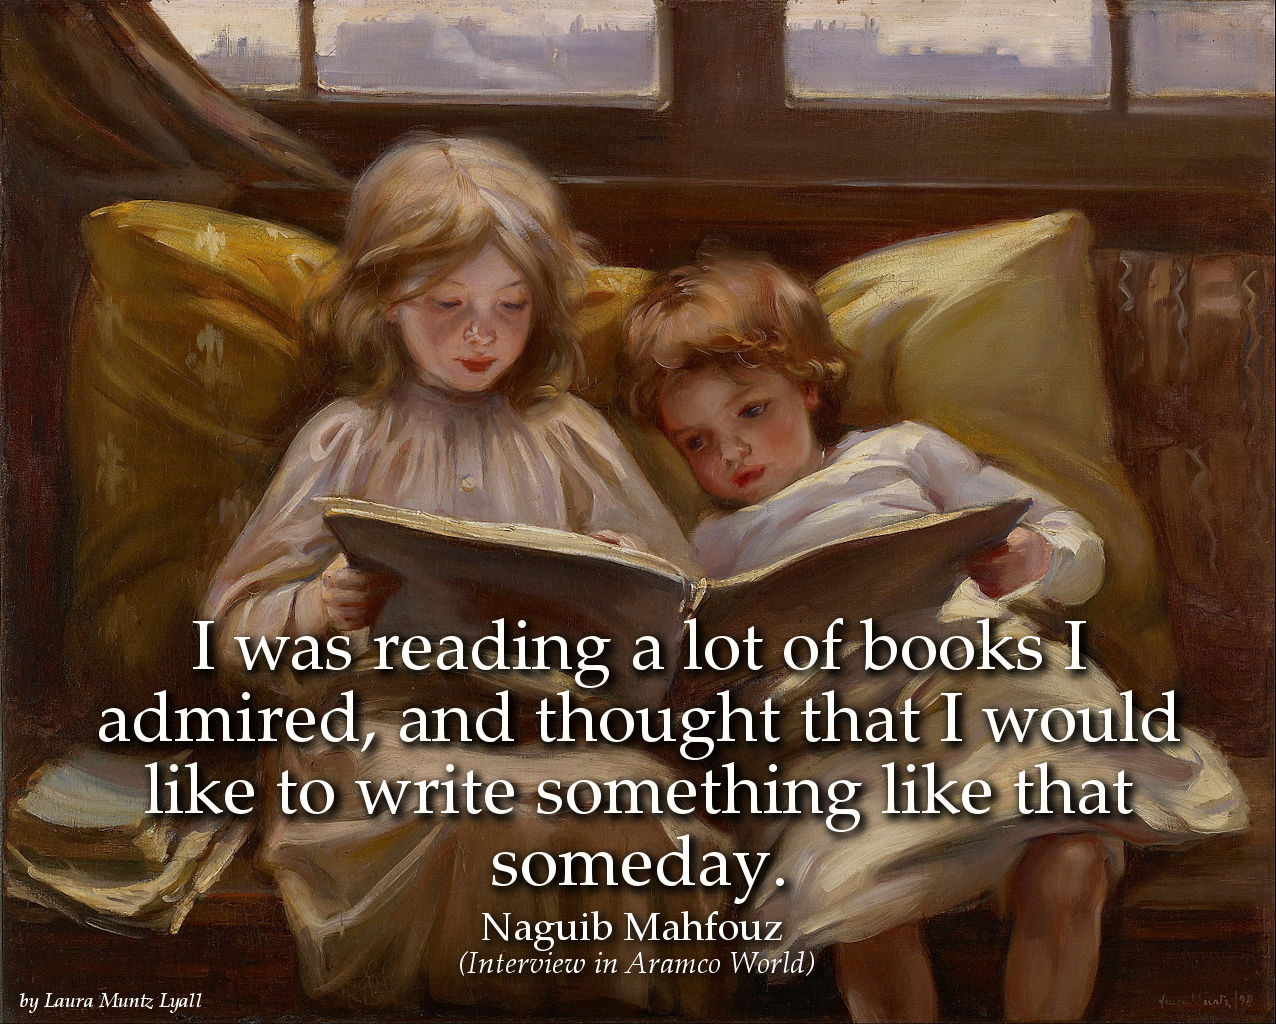 Naguib Mahfouz Quote: I was reading a lot of books I admired, and thought that I would like to write...